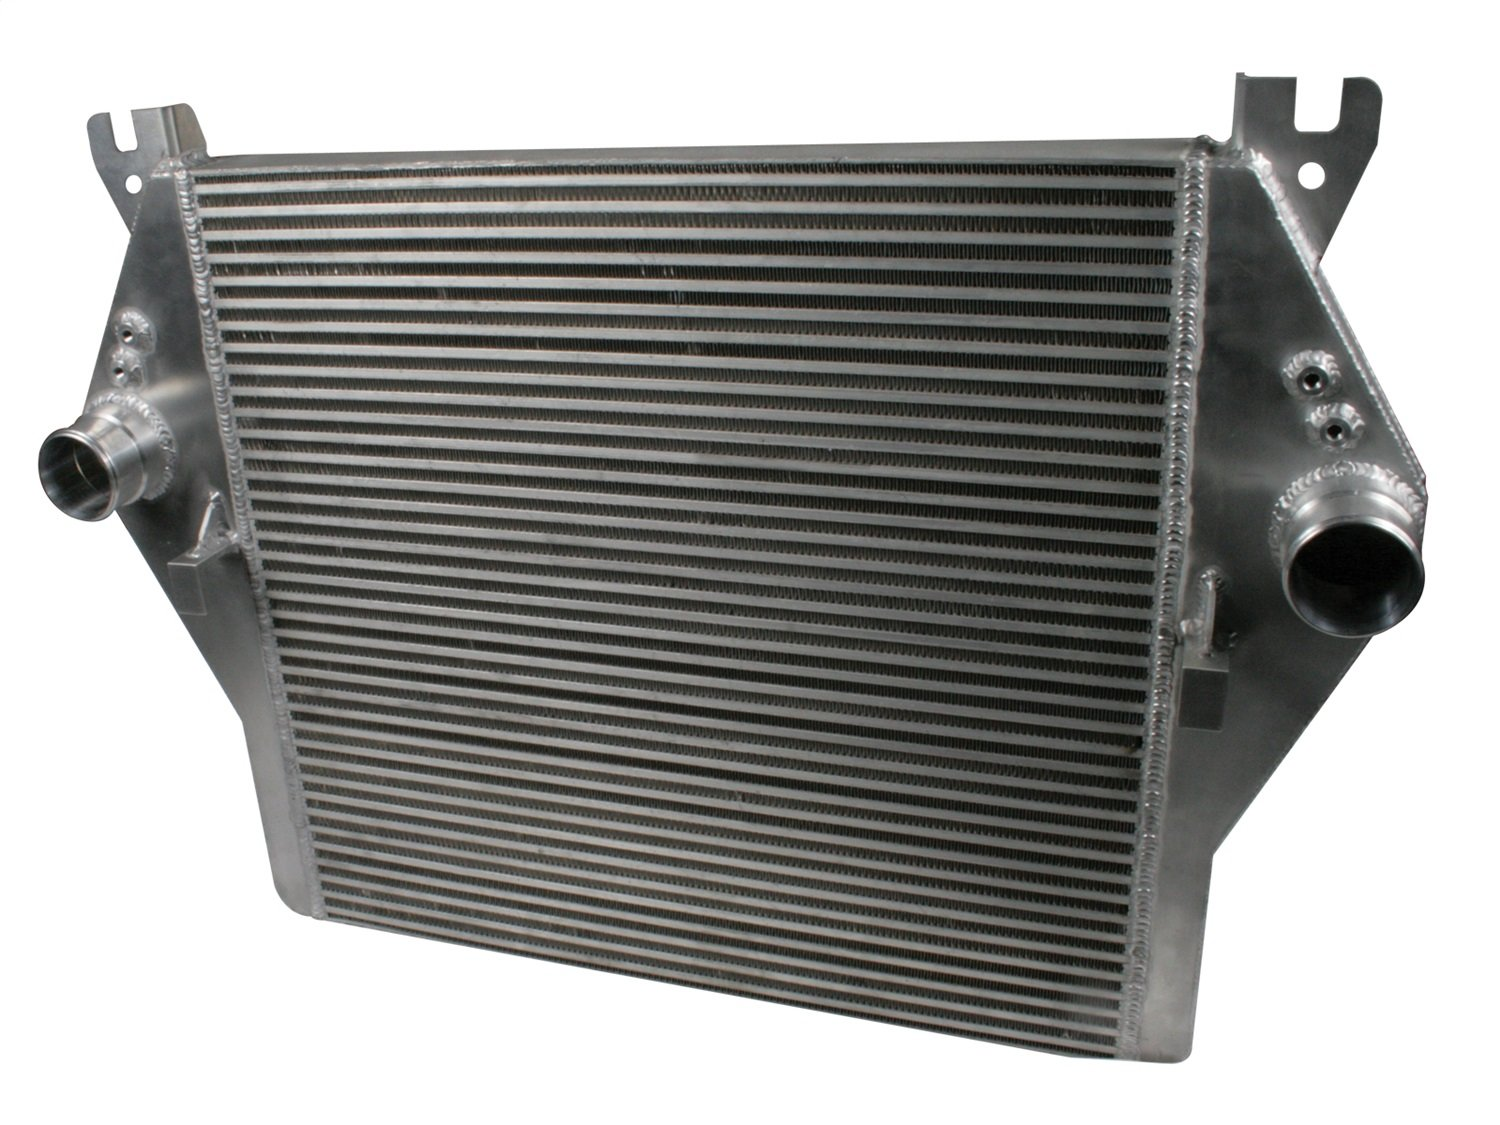 aFe 46-20011 Bladerunner Intercooler by aFe Power (Image #1)